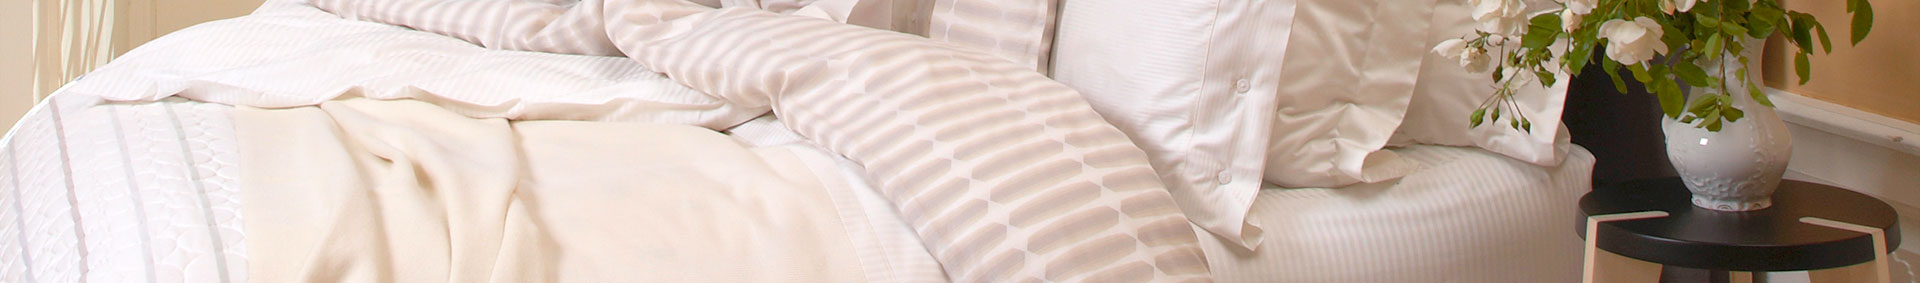 Private Label Bedding - Foam Mattresses - Memory Foam - Gel Foam - Pillows - Sheet Sets - Memory Foam Mattress Toppers - Hybrid Coil and Foam Mattresses - Linens - Danican Private Label Bedding Manufacturer